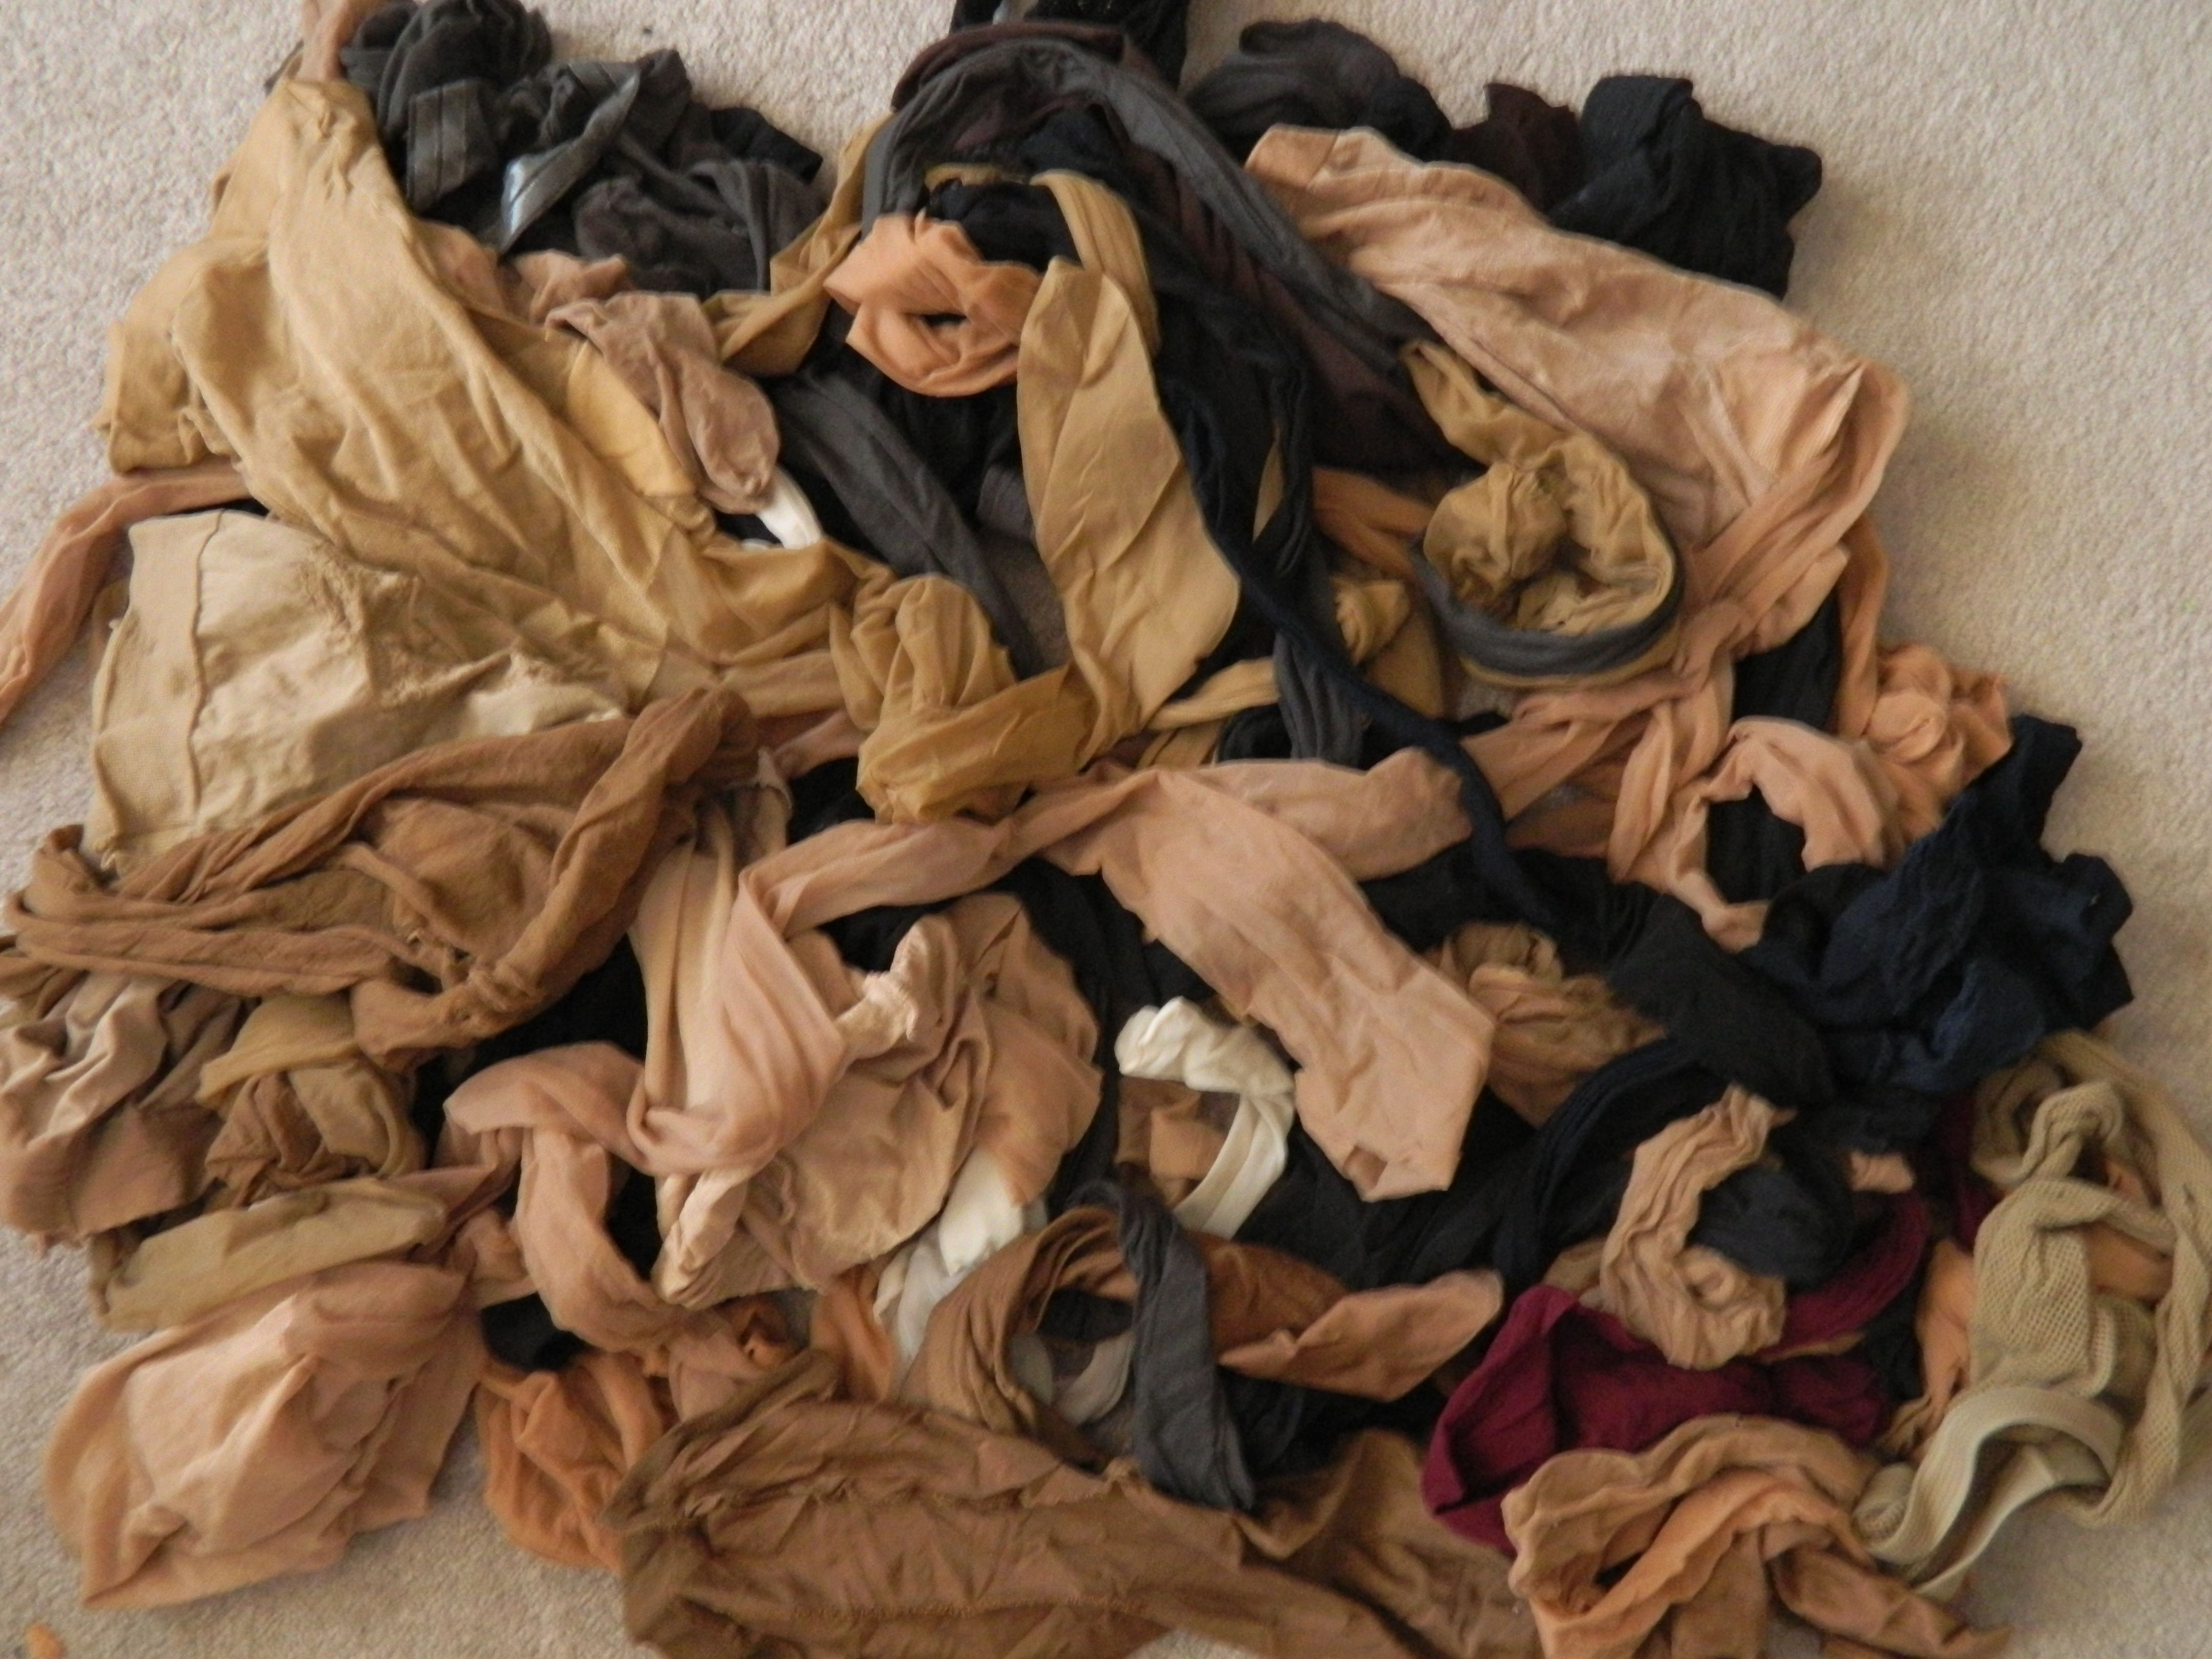 Pile of pantyhose what